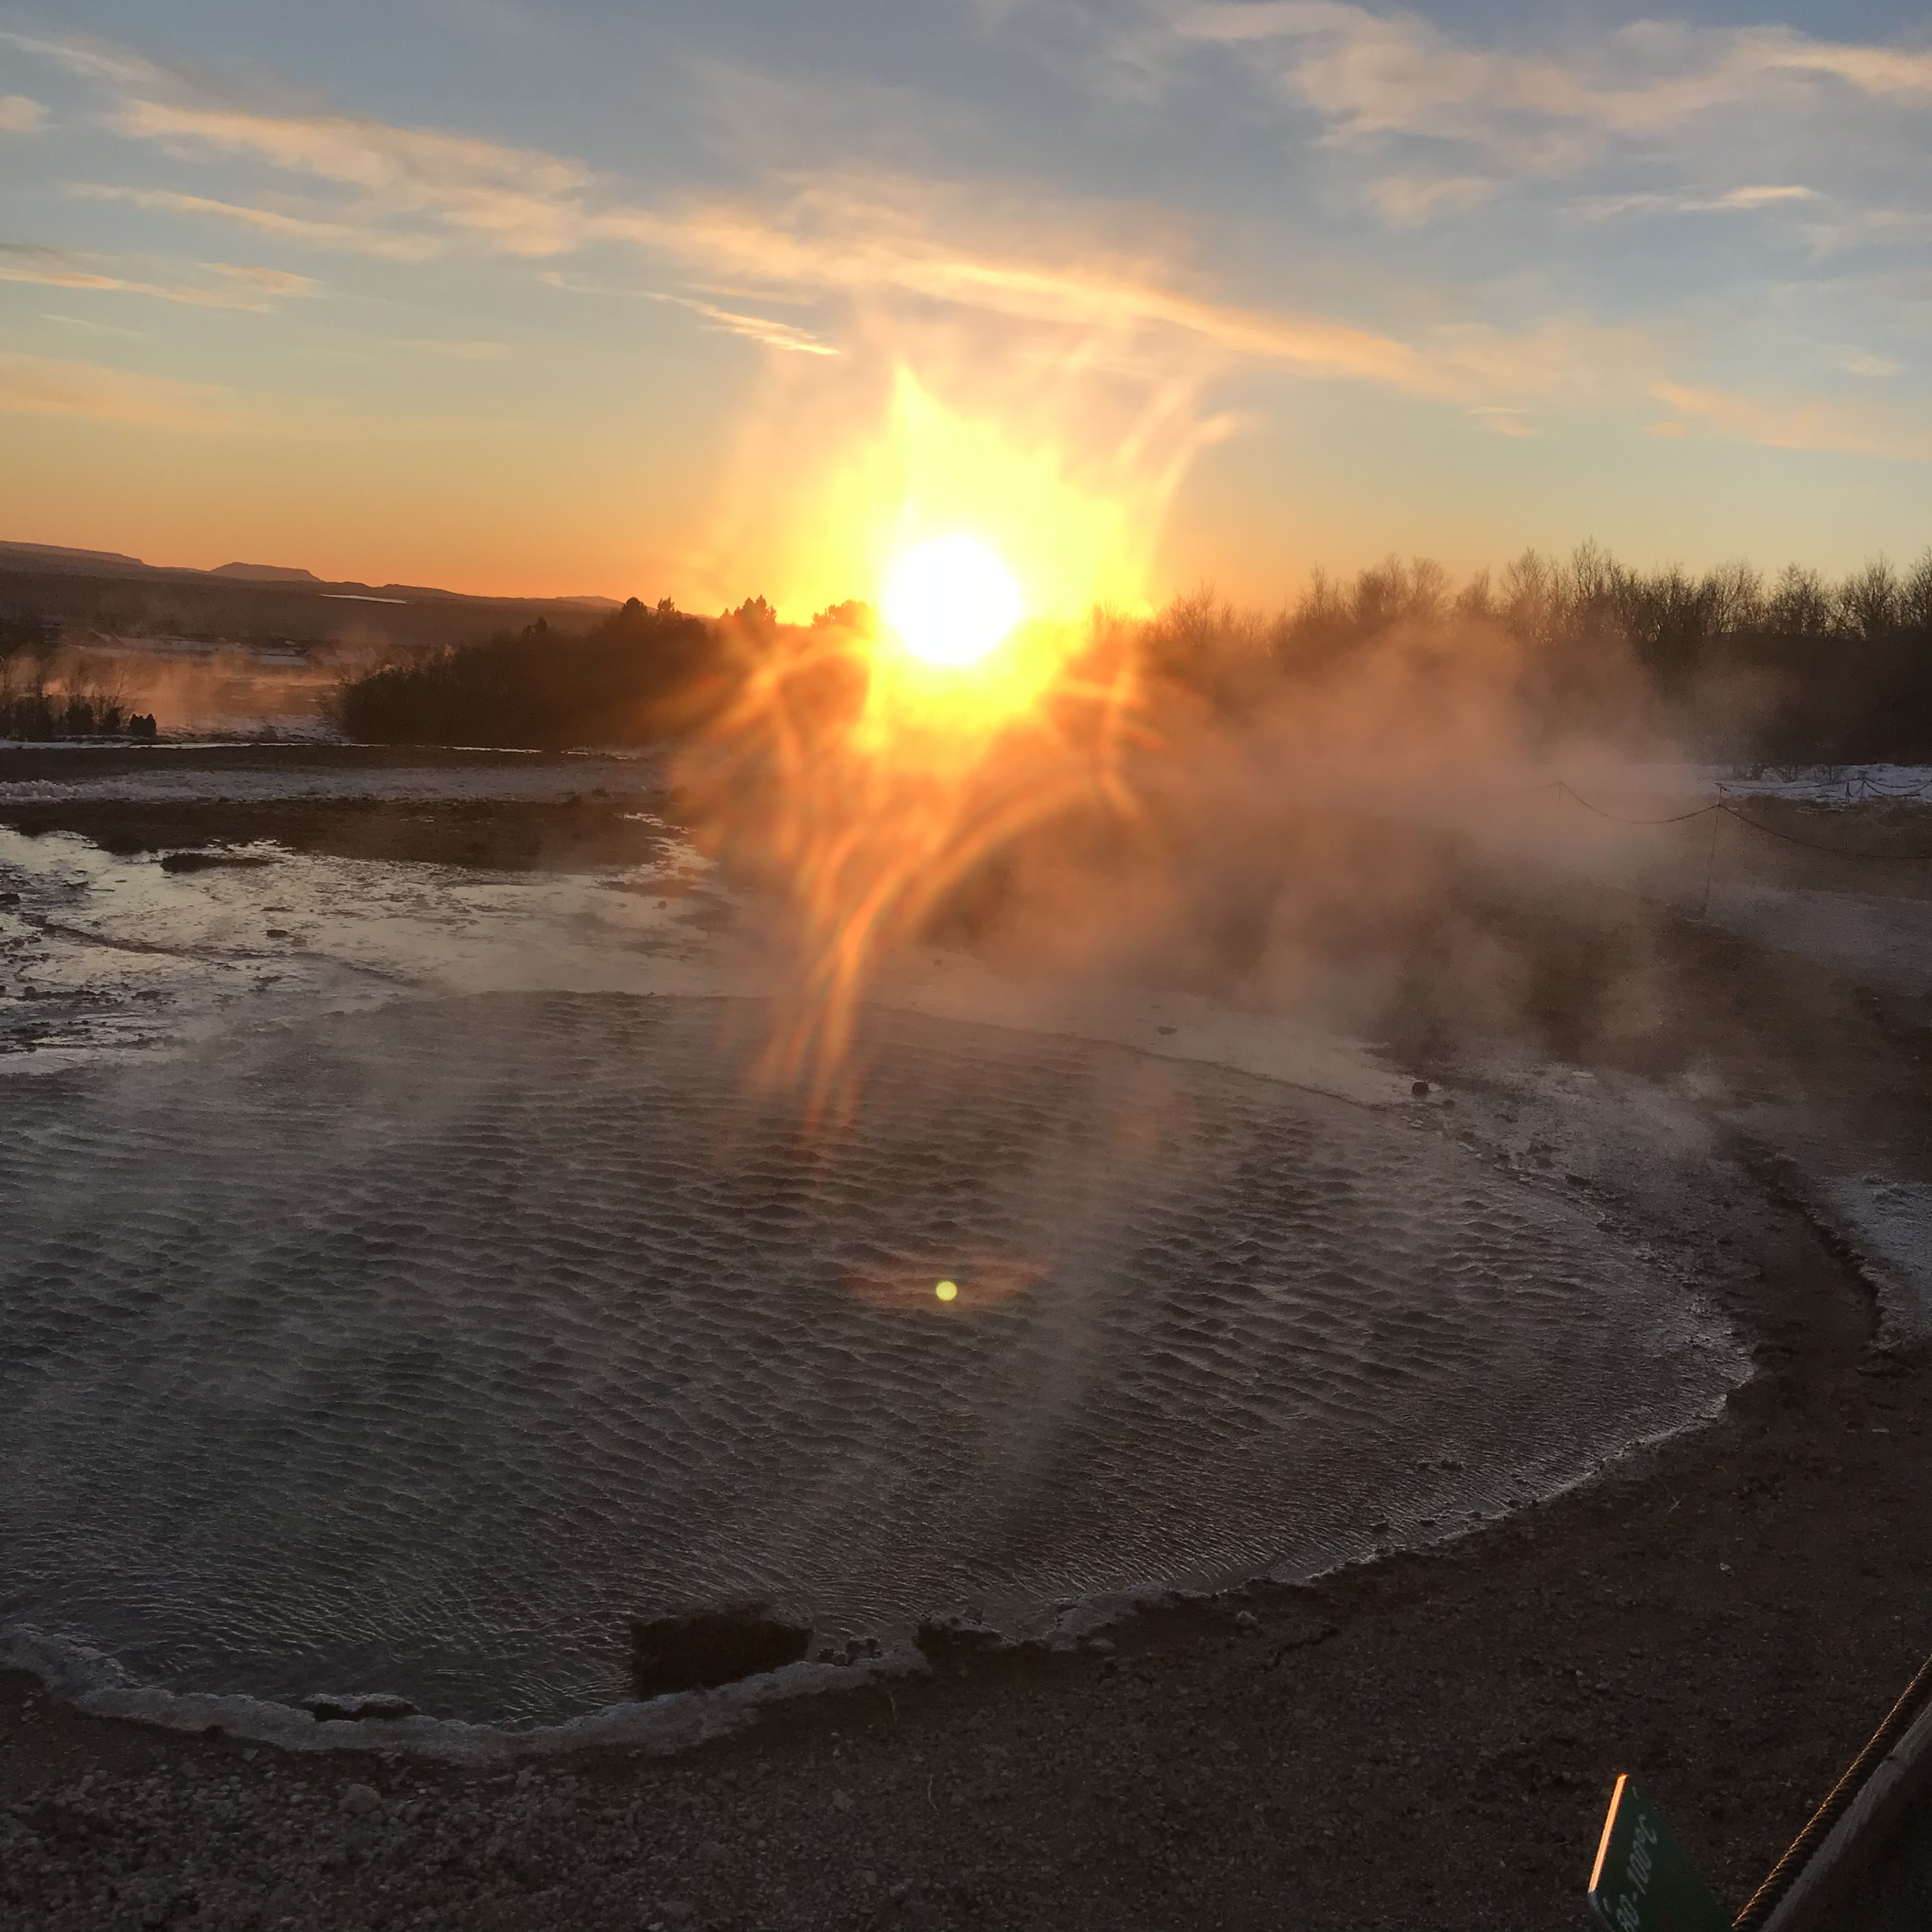 Geysir had just erupted and the heat distorted the sun through the steam in this picture